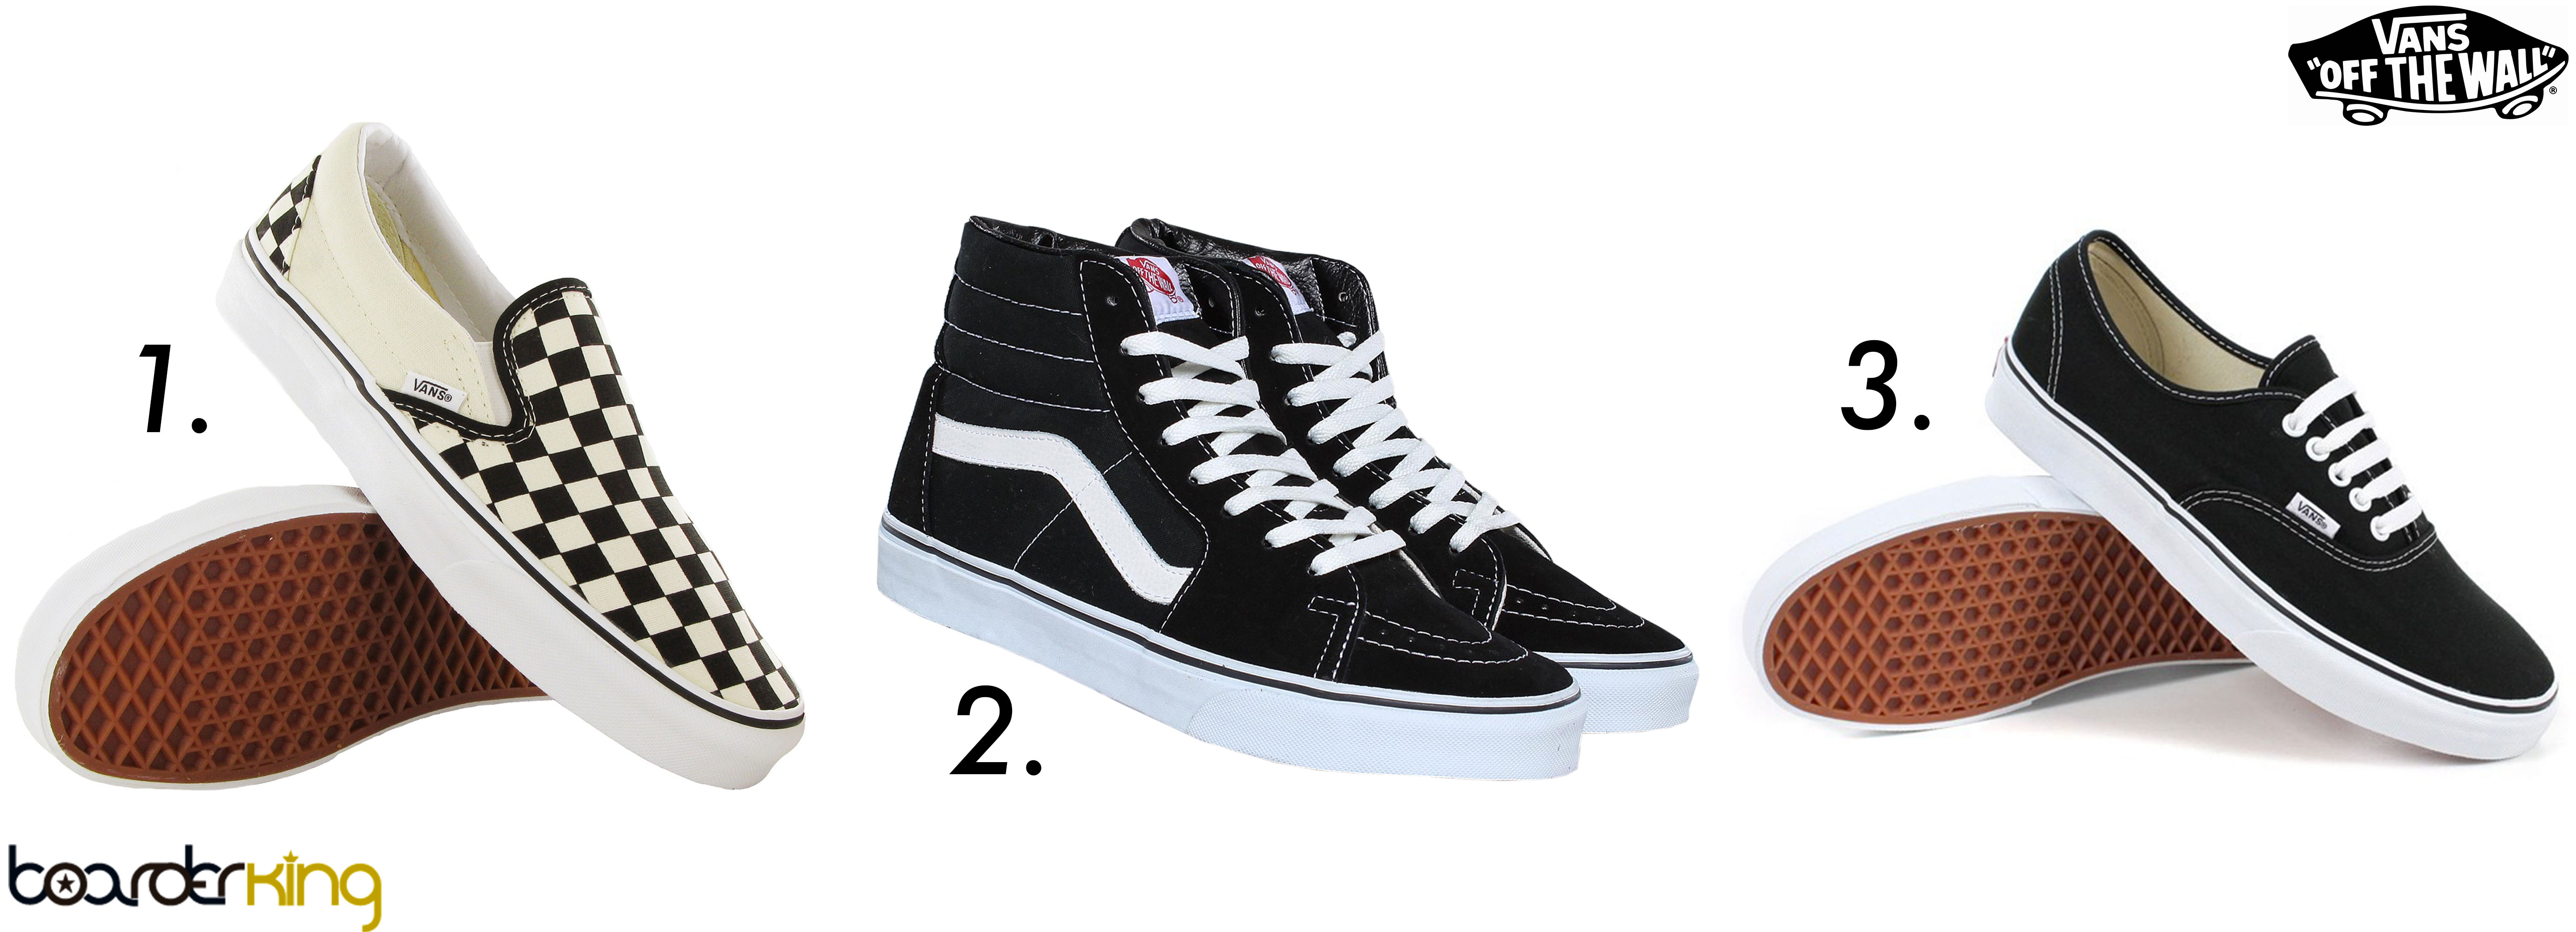 2vans off the wall zapatillas mujer